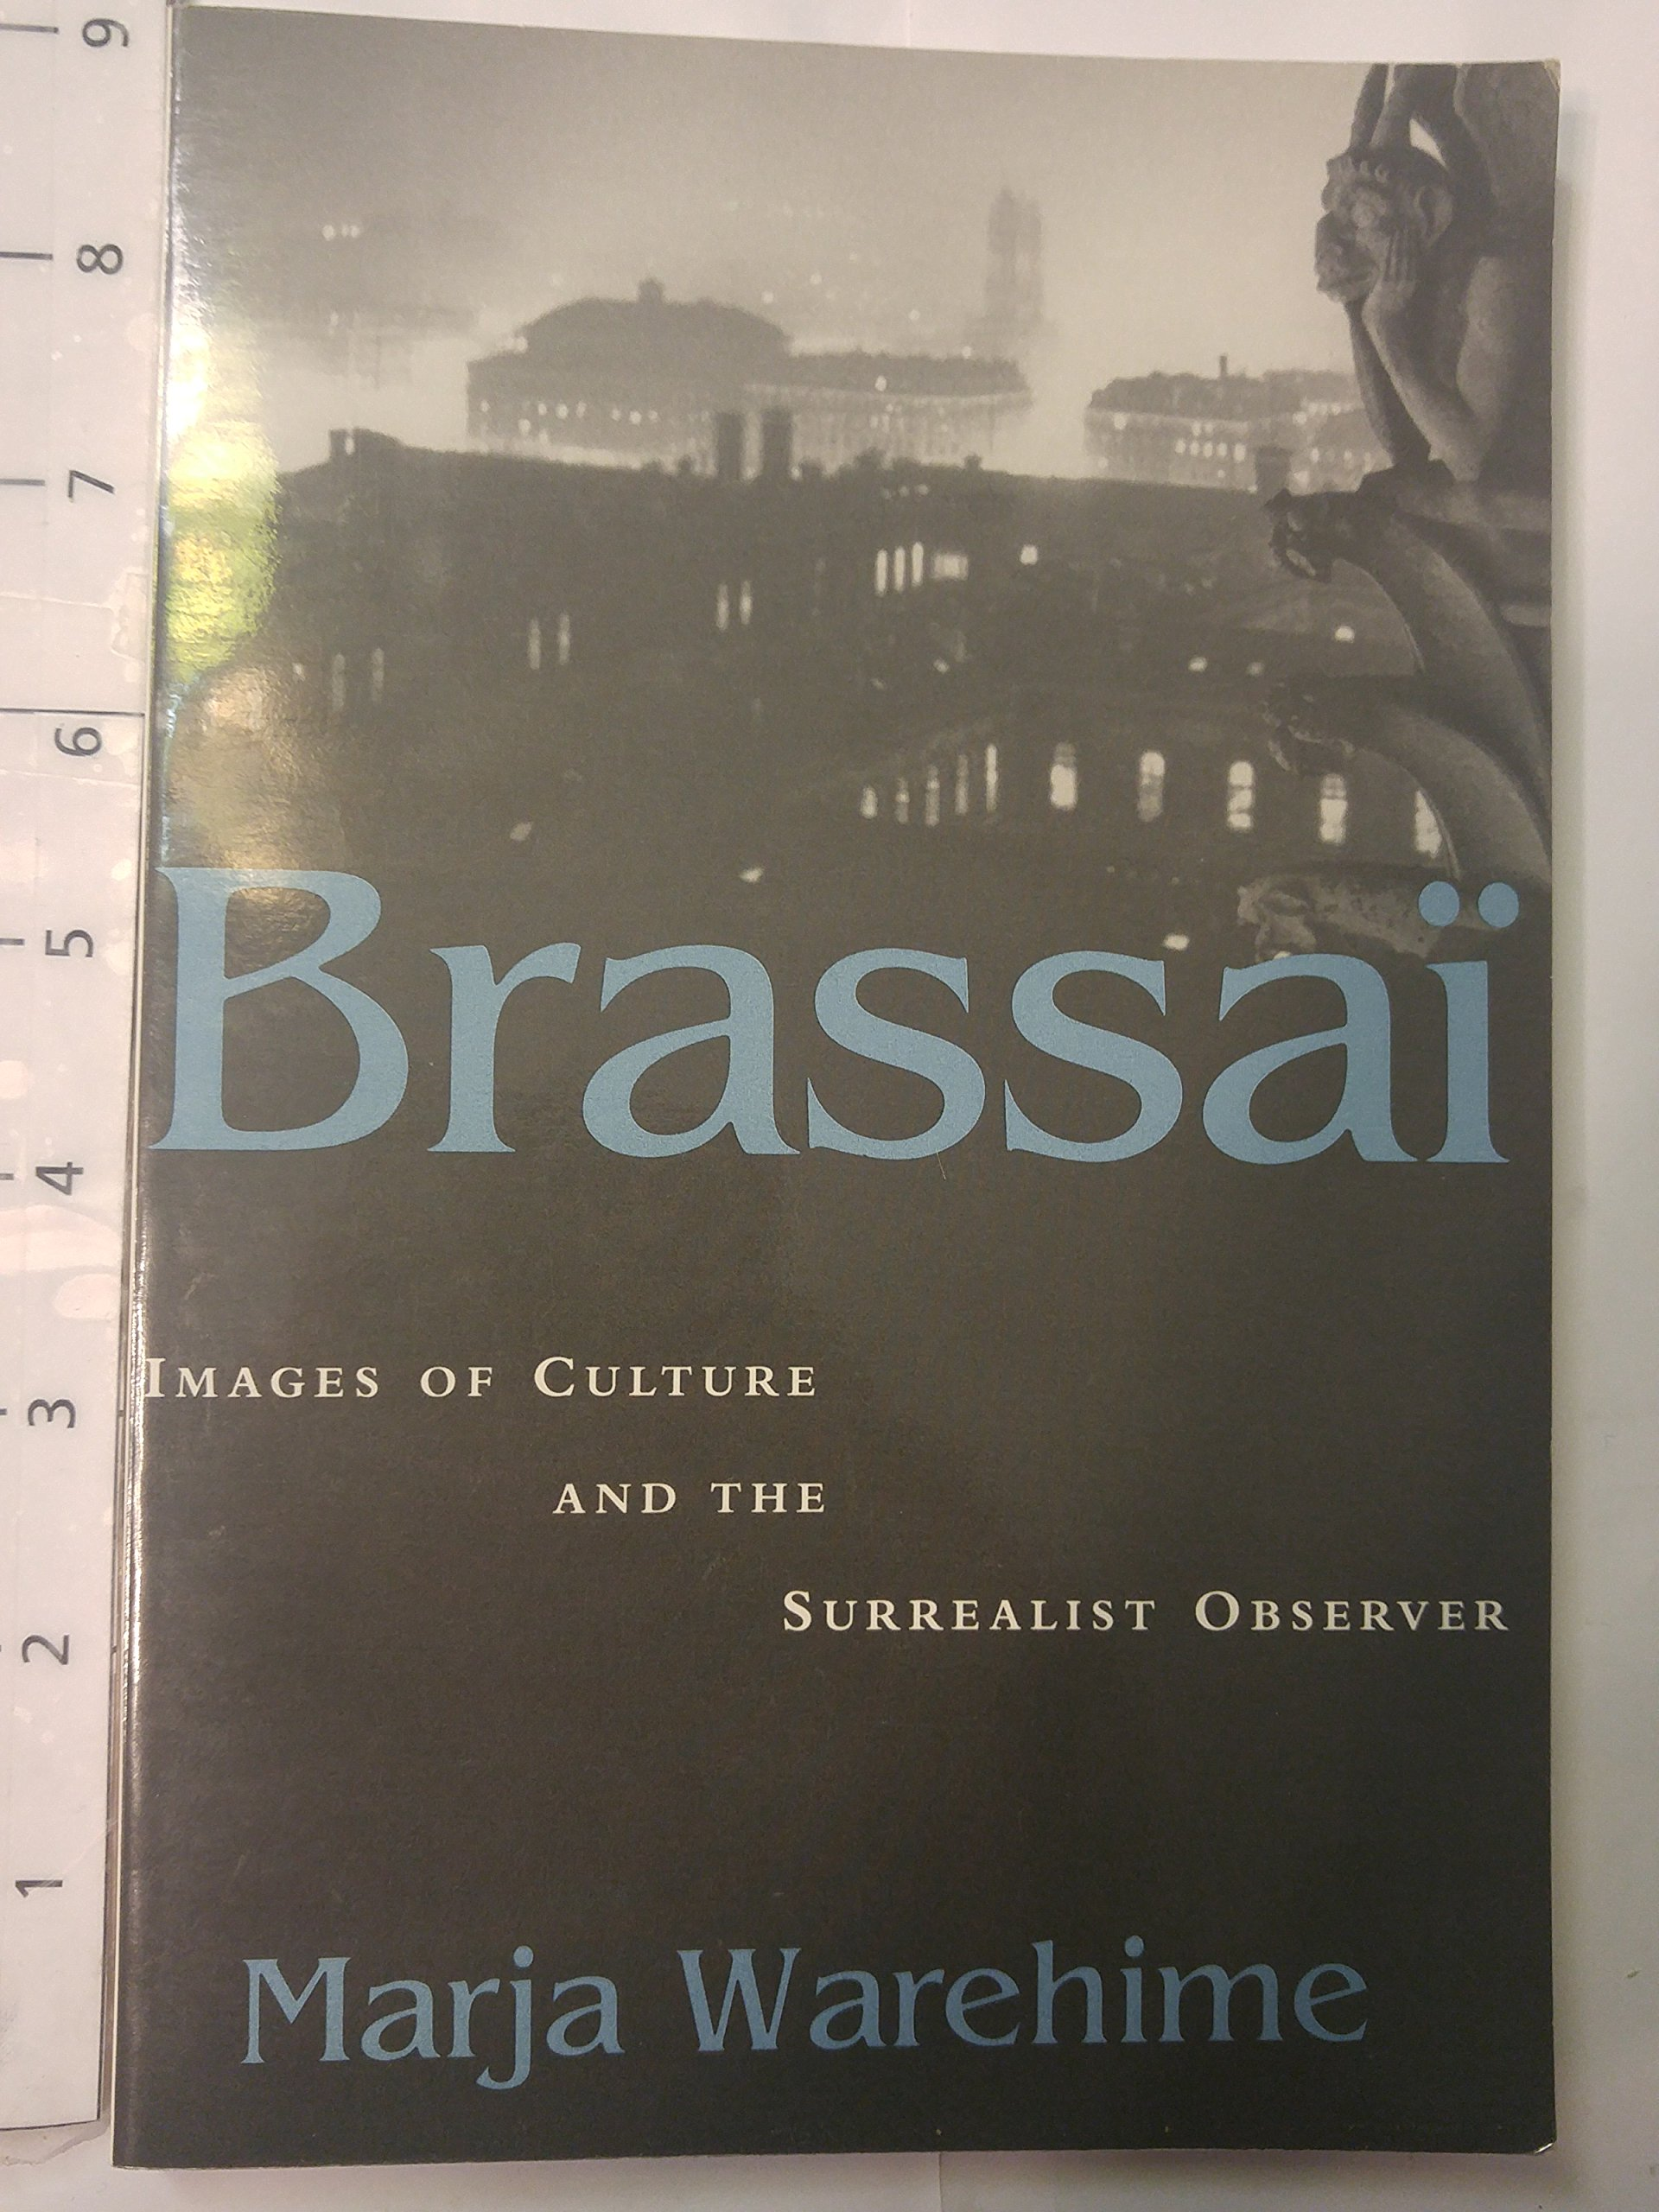 Brassai: Images of Culture and the Surrealist Observer (Modernist Studies)